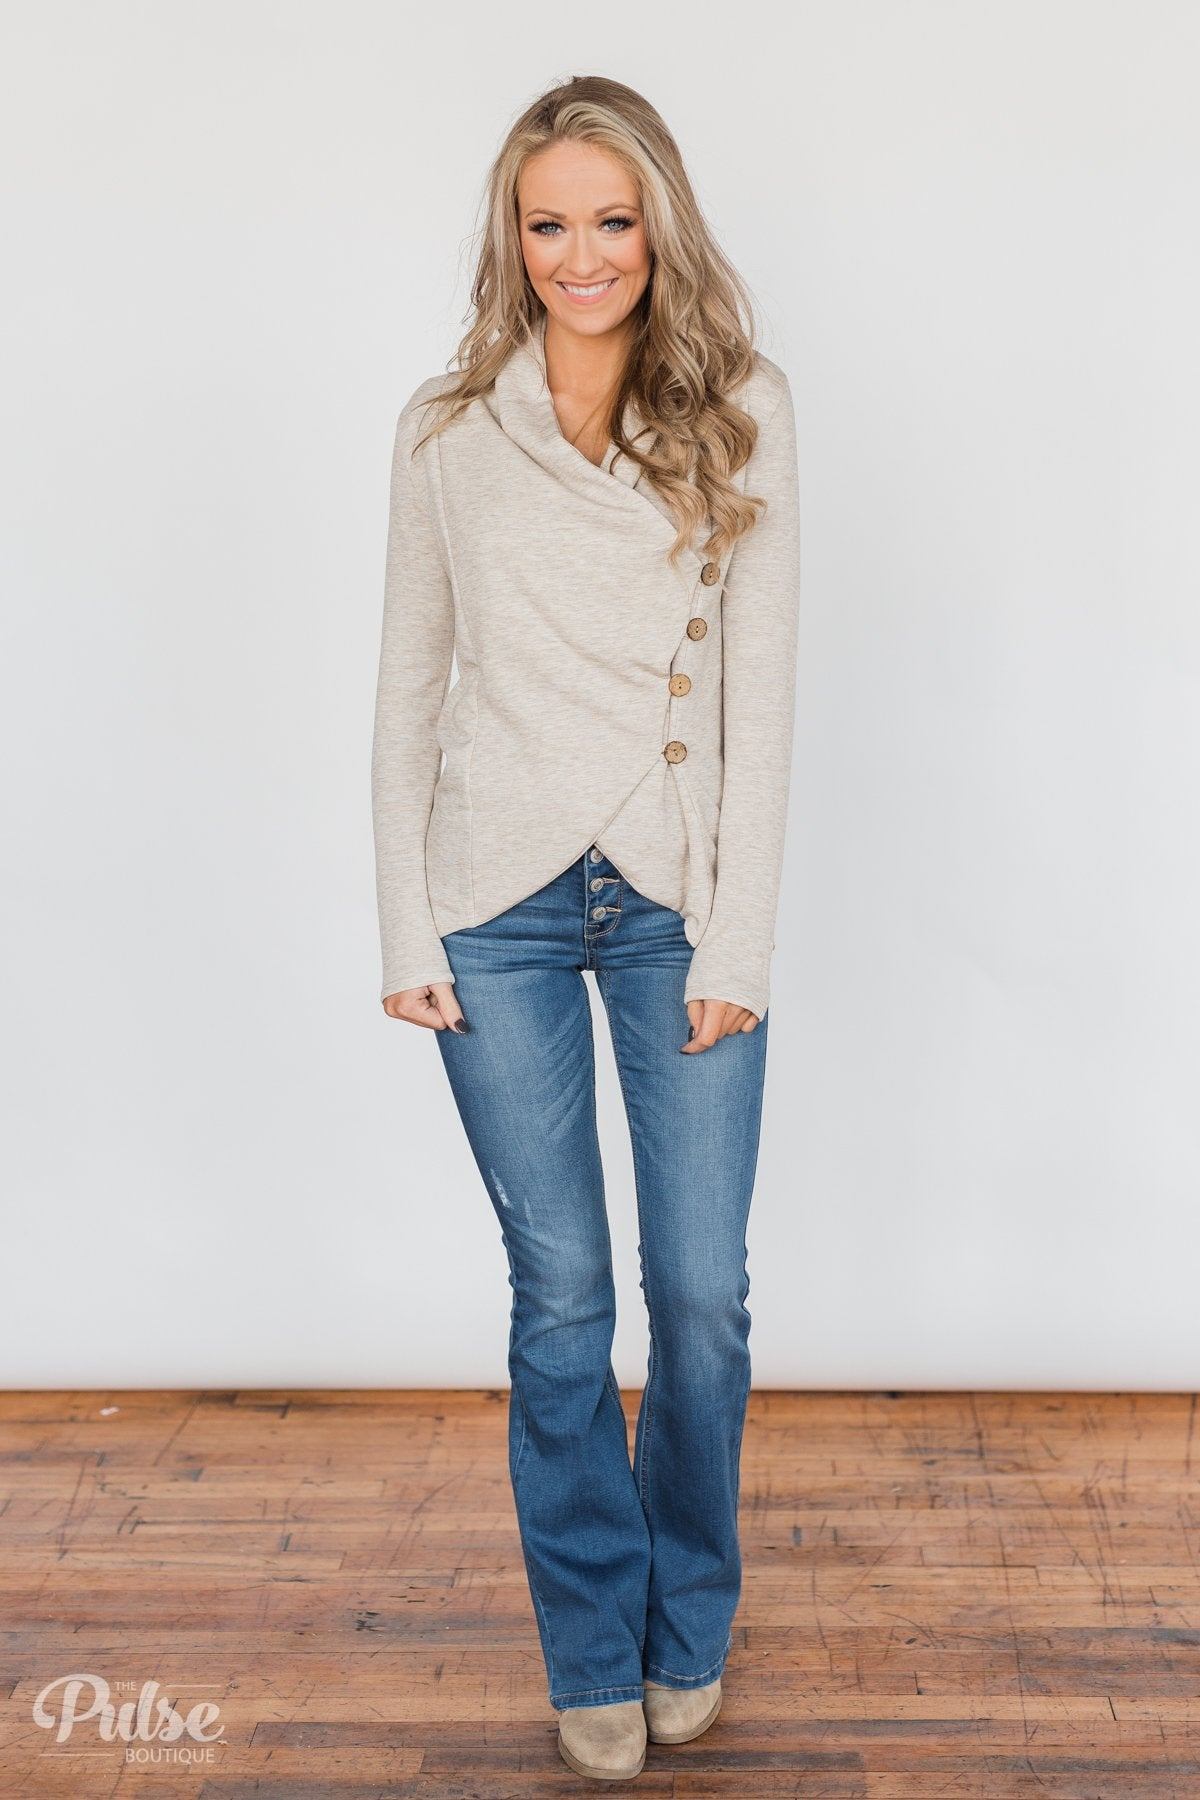 The Perfect Occasion Jacket- Oatmeal